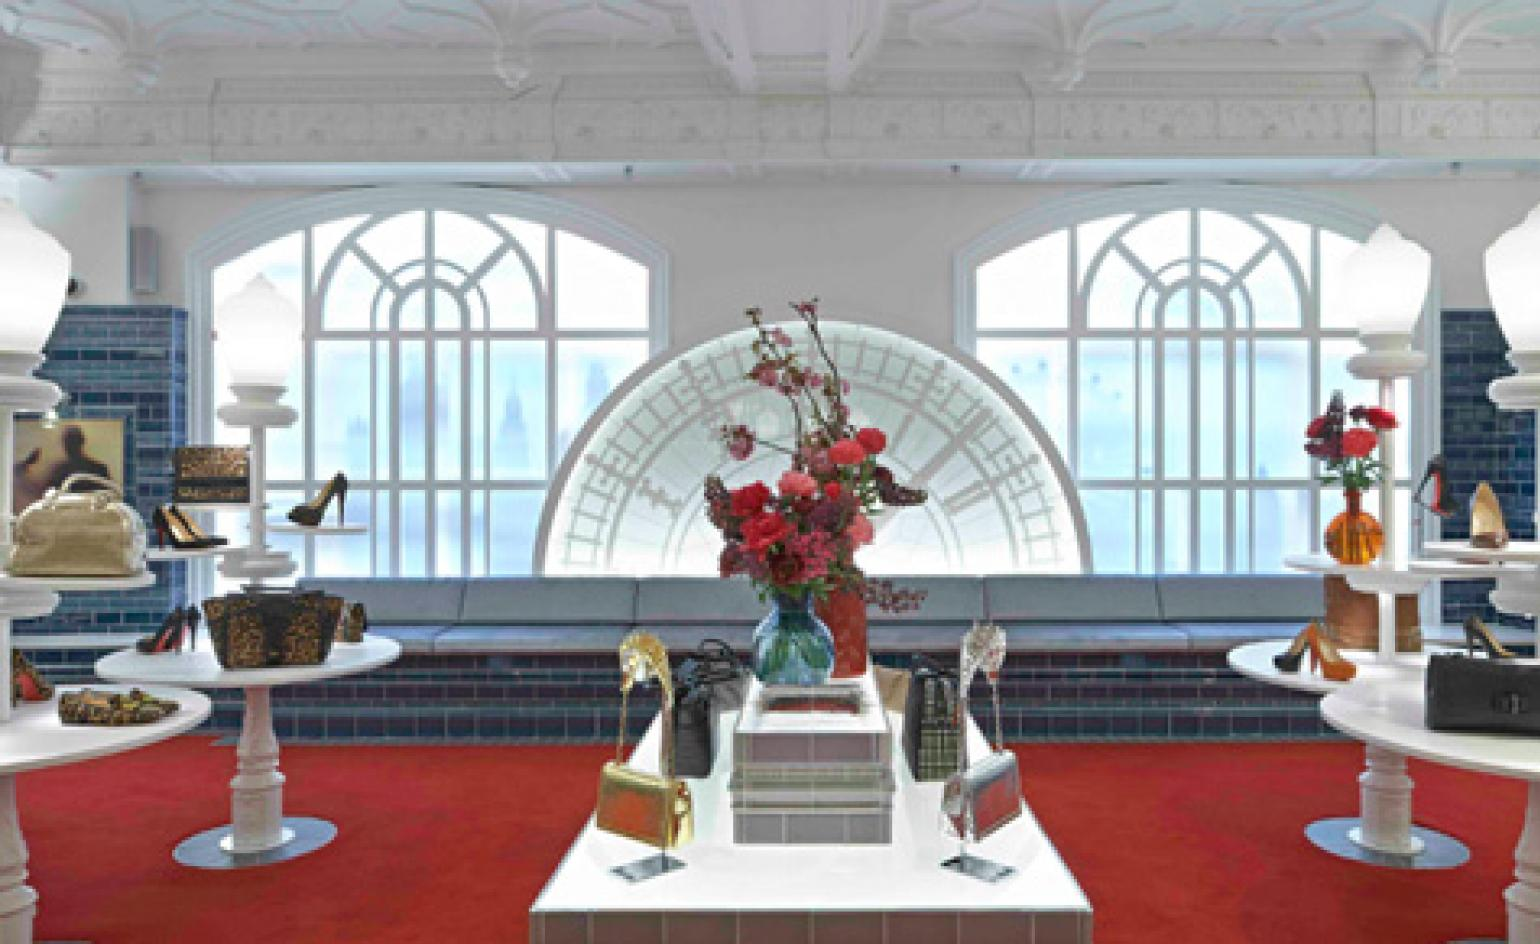 Lee Broom Designs The New Christian Louboutin Boutique In